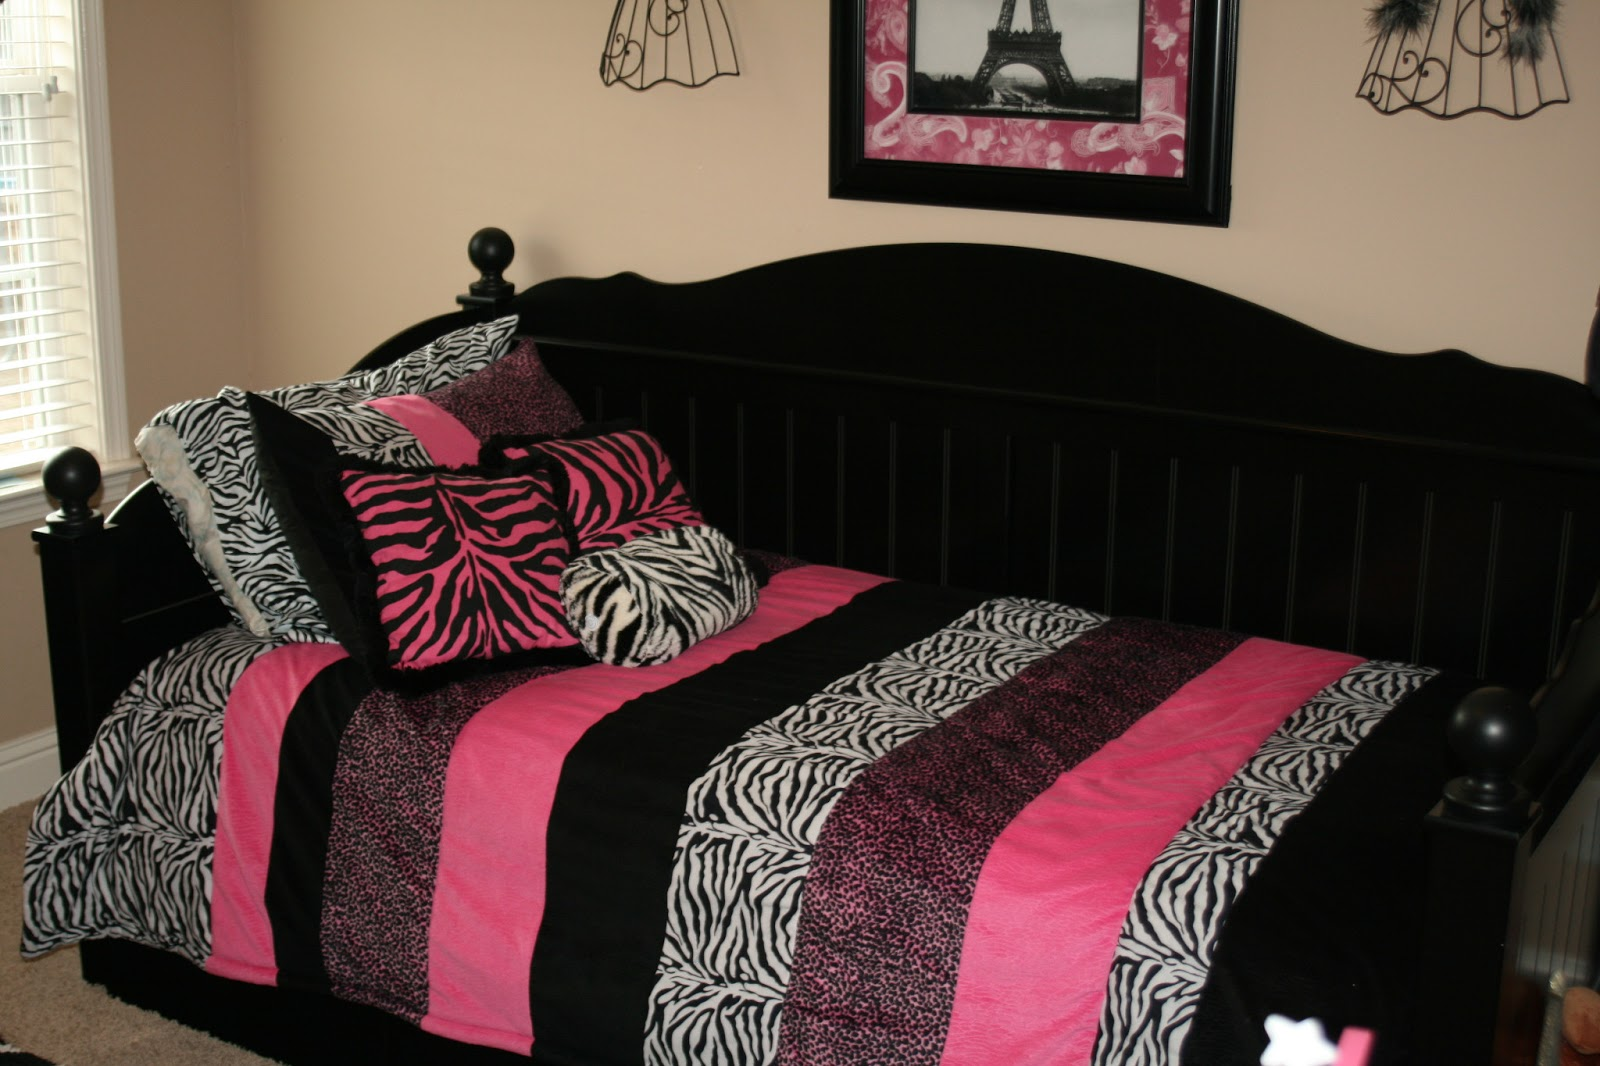 Paris Themed Wallpaper For Bedroom Pink And Black Wallpaper For Bedrooms 3 Free Wallpaper